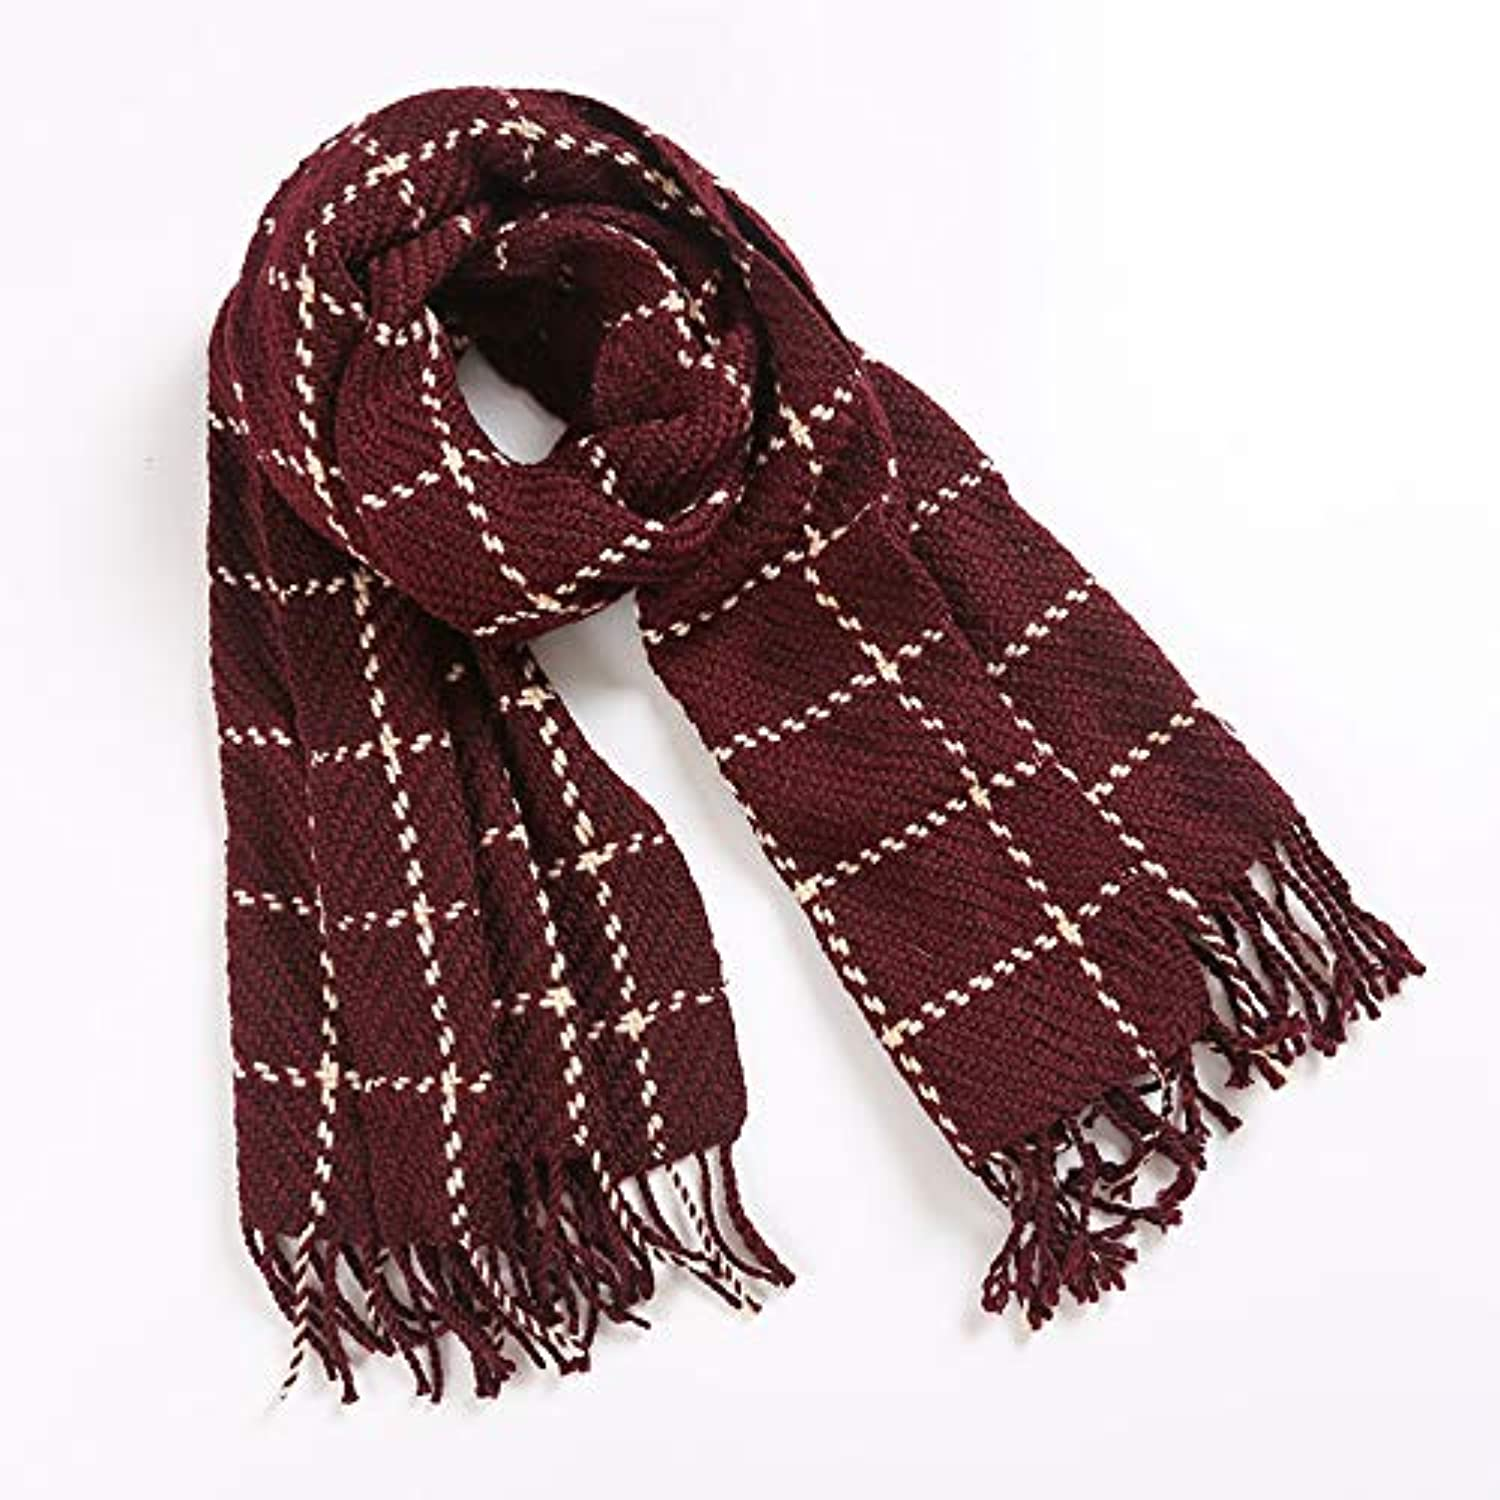 JINGB Home Ladies Plaid Knitted Wool Scarf Female Autumn and Winter Long Shawl Dualuse Thickening (color   Burgundy)